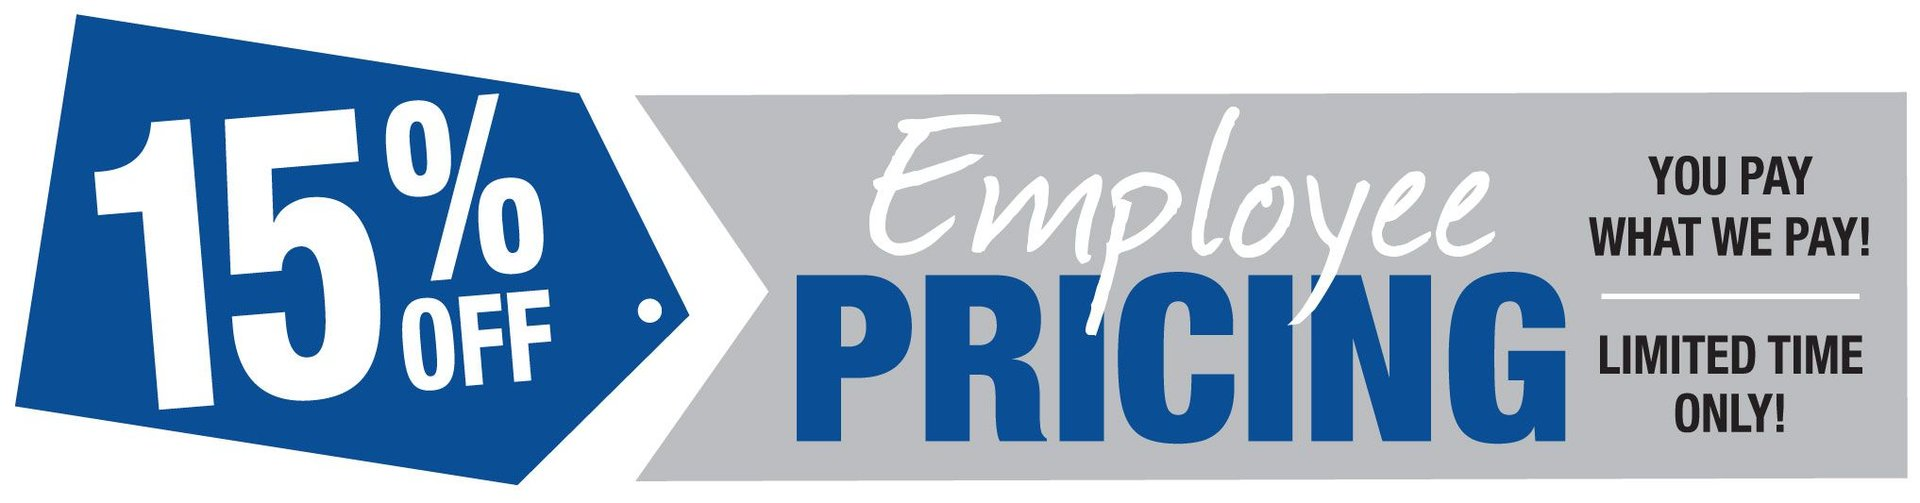 15% Off Employee Pricing. You Pay What We Pay!